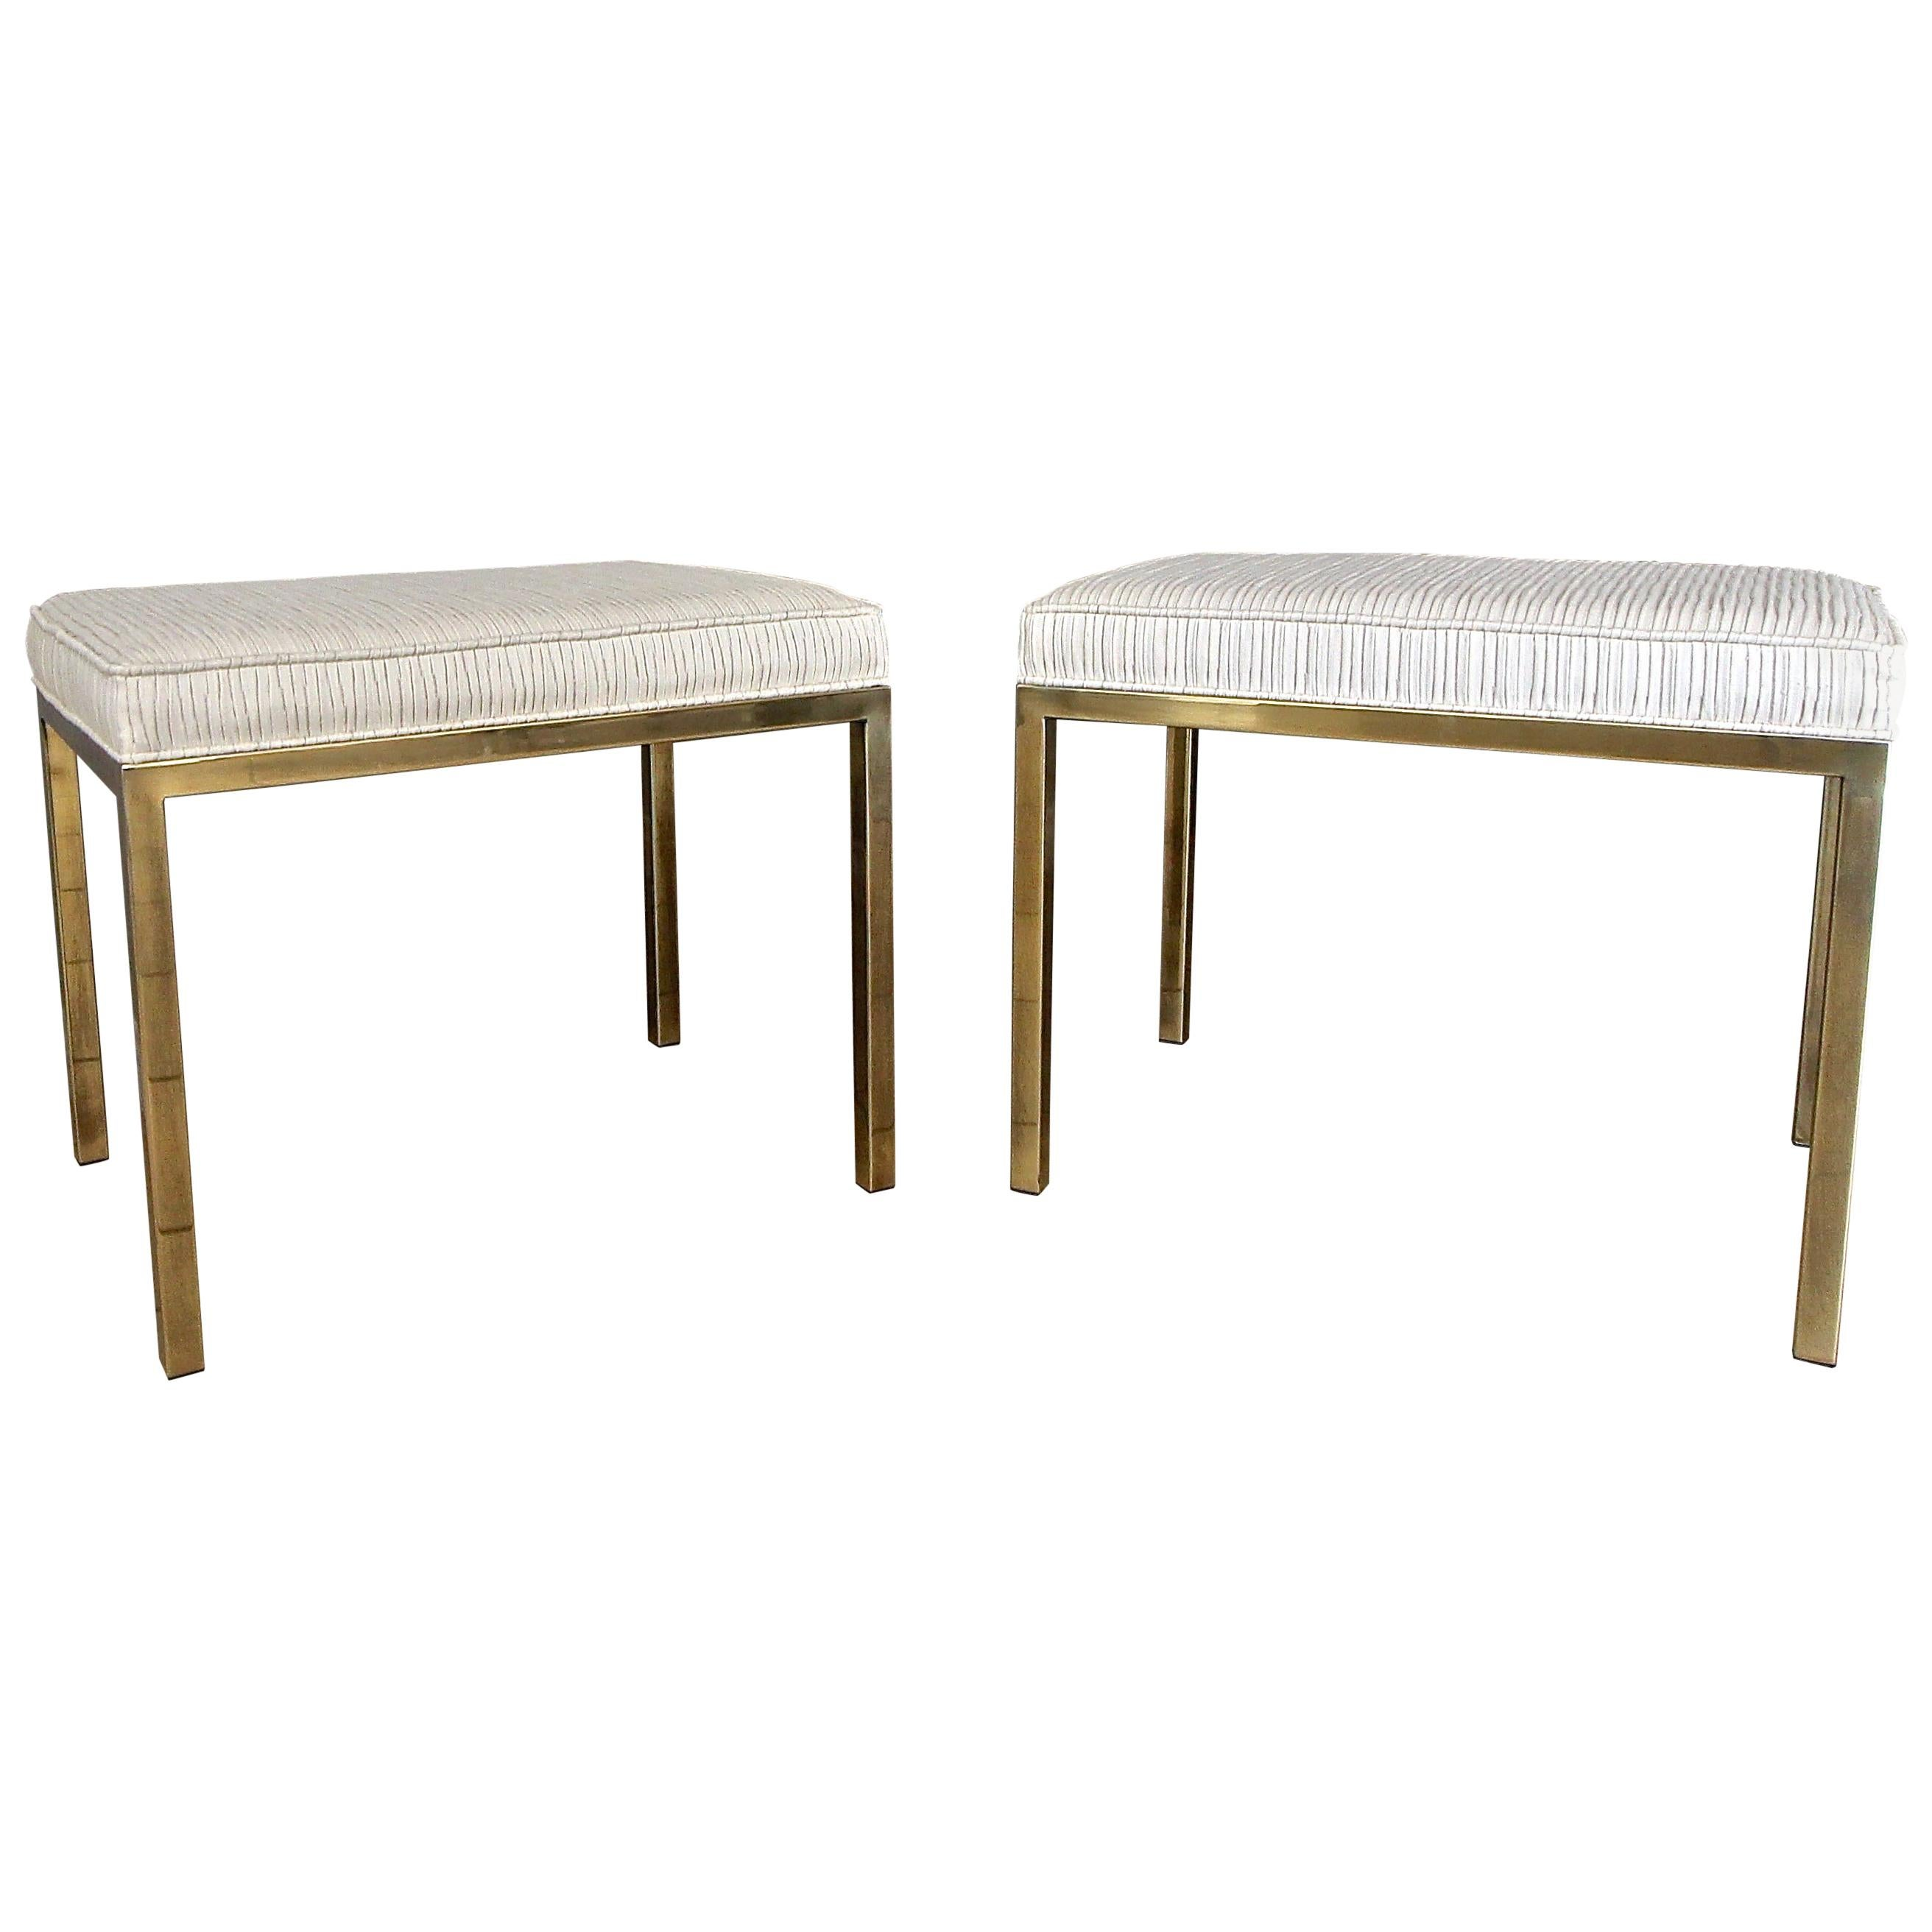 Pair of Mastercraft Brass Rectangular Benches Stools